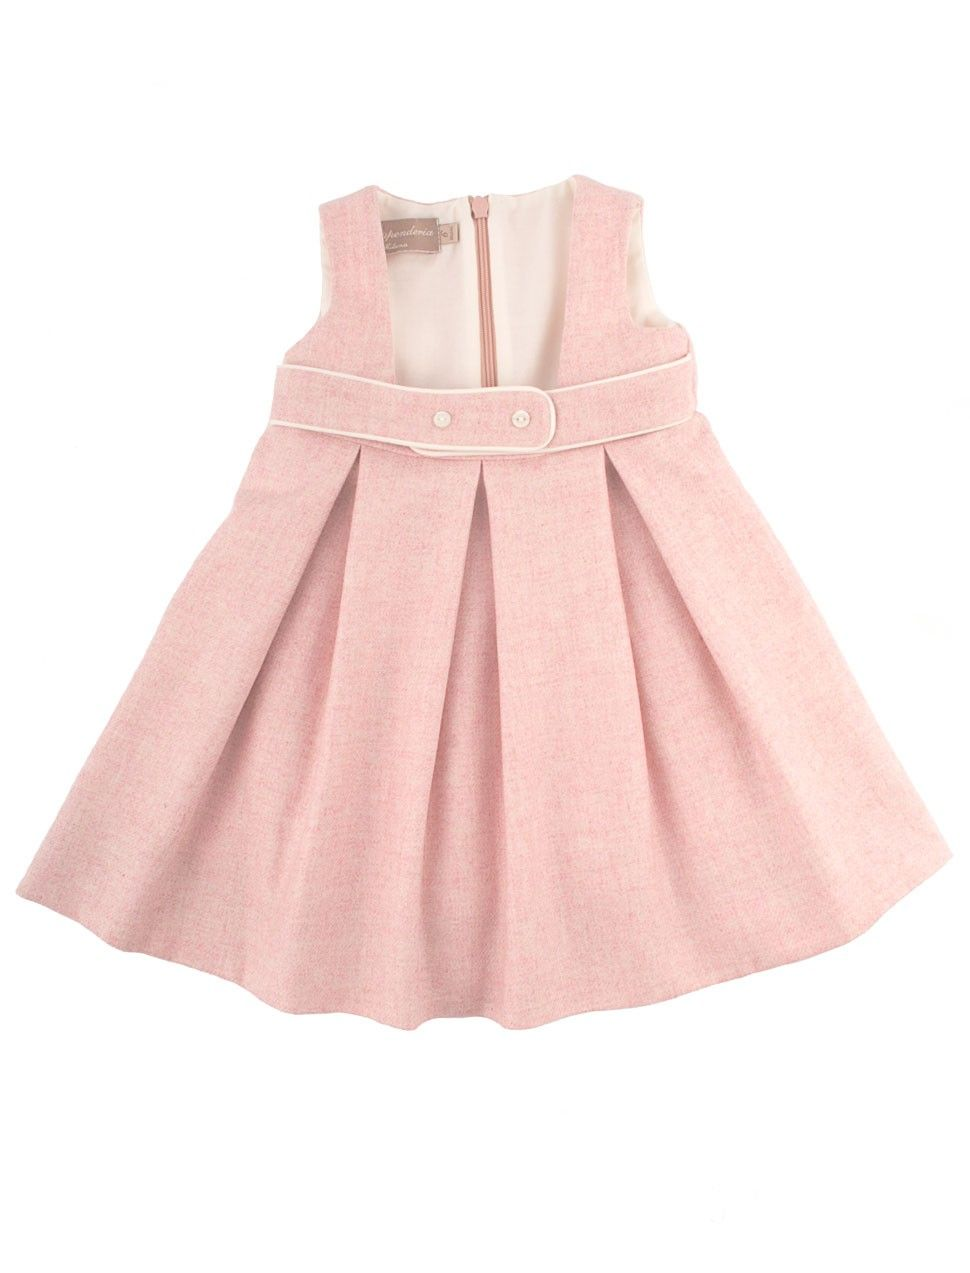 Pink dress for girls pinterest pink dresses and babies